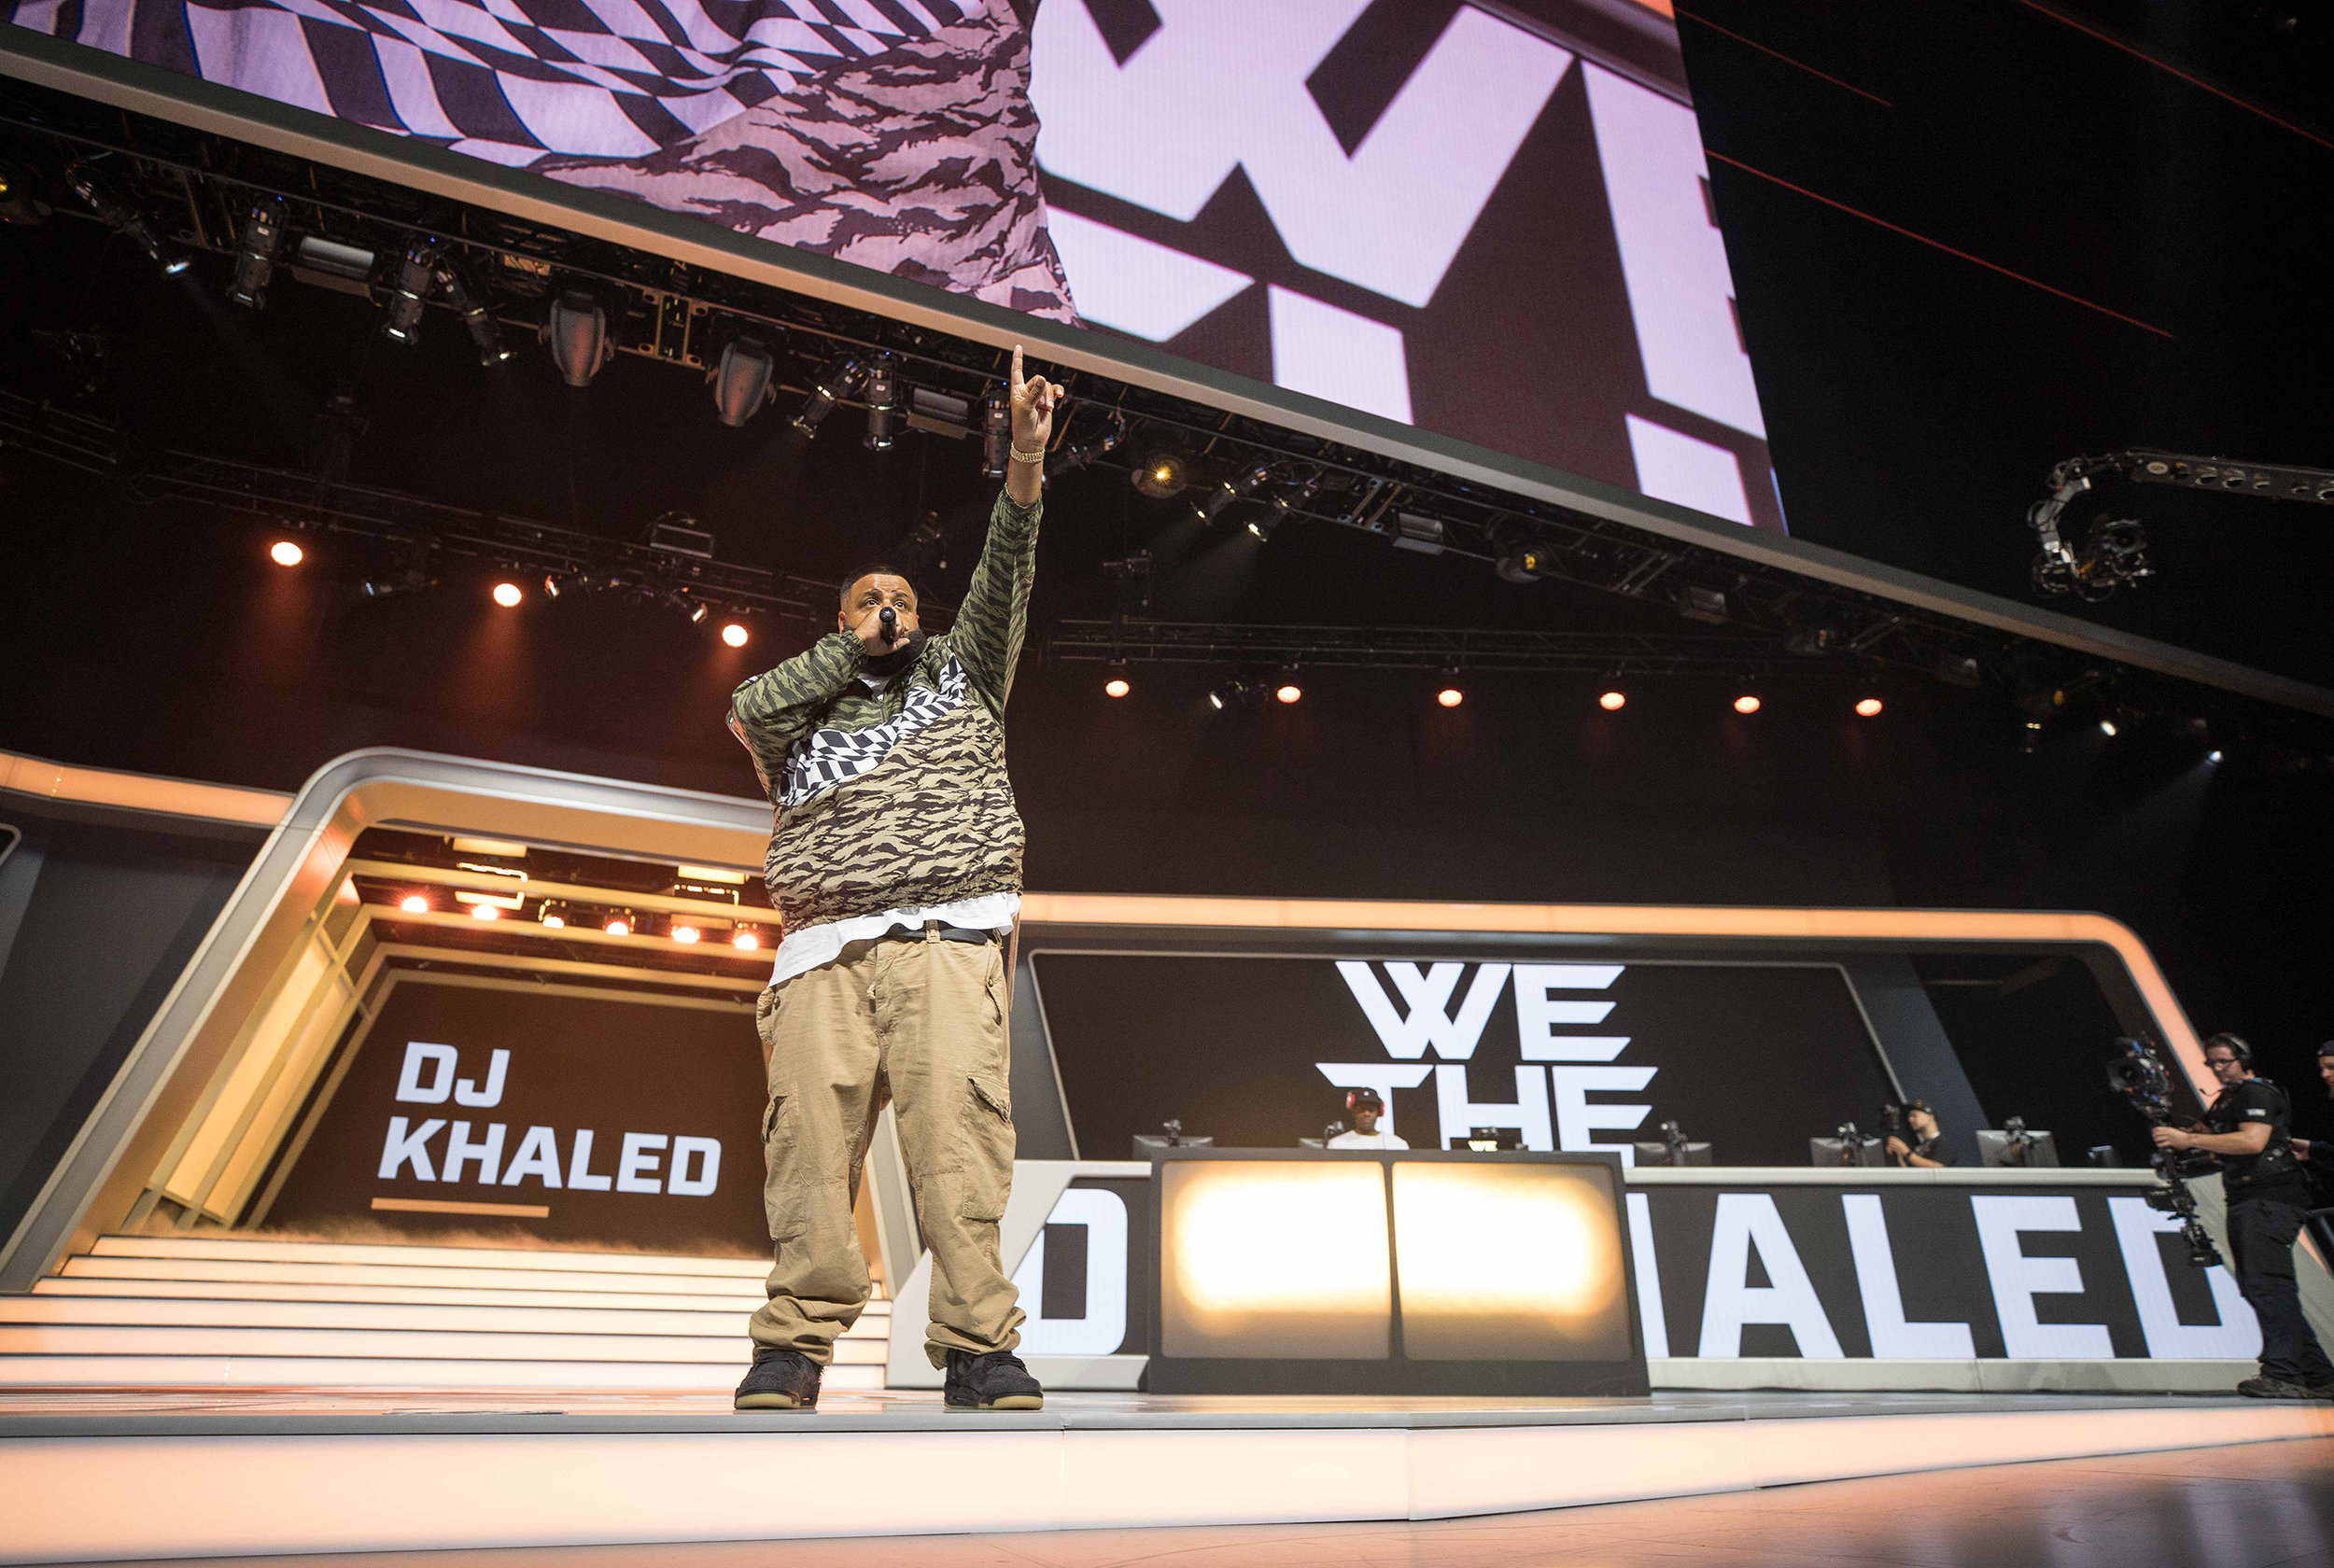 Overwatch League Grand Finals, DJ Khaled performing live while London Spitfire and Philadelphia Fusion perparing for championship round at Barclays Center on July 27, 2018 in Brooklyn, New York.  Photo by Hannah Smith / ESPAT Media